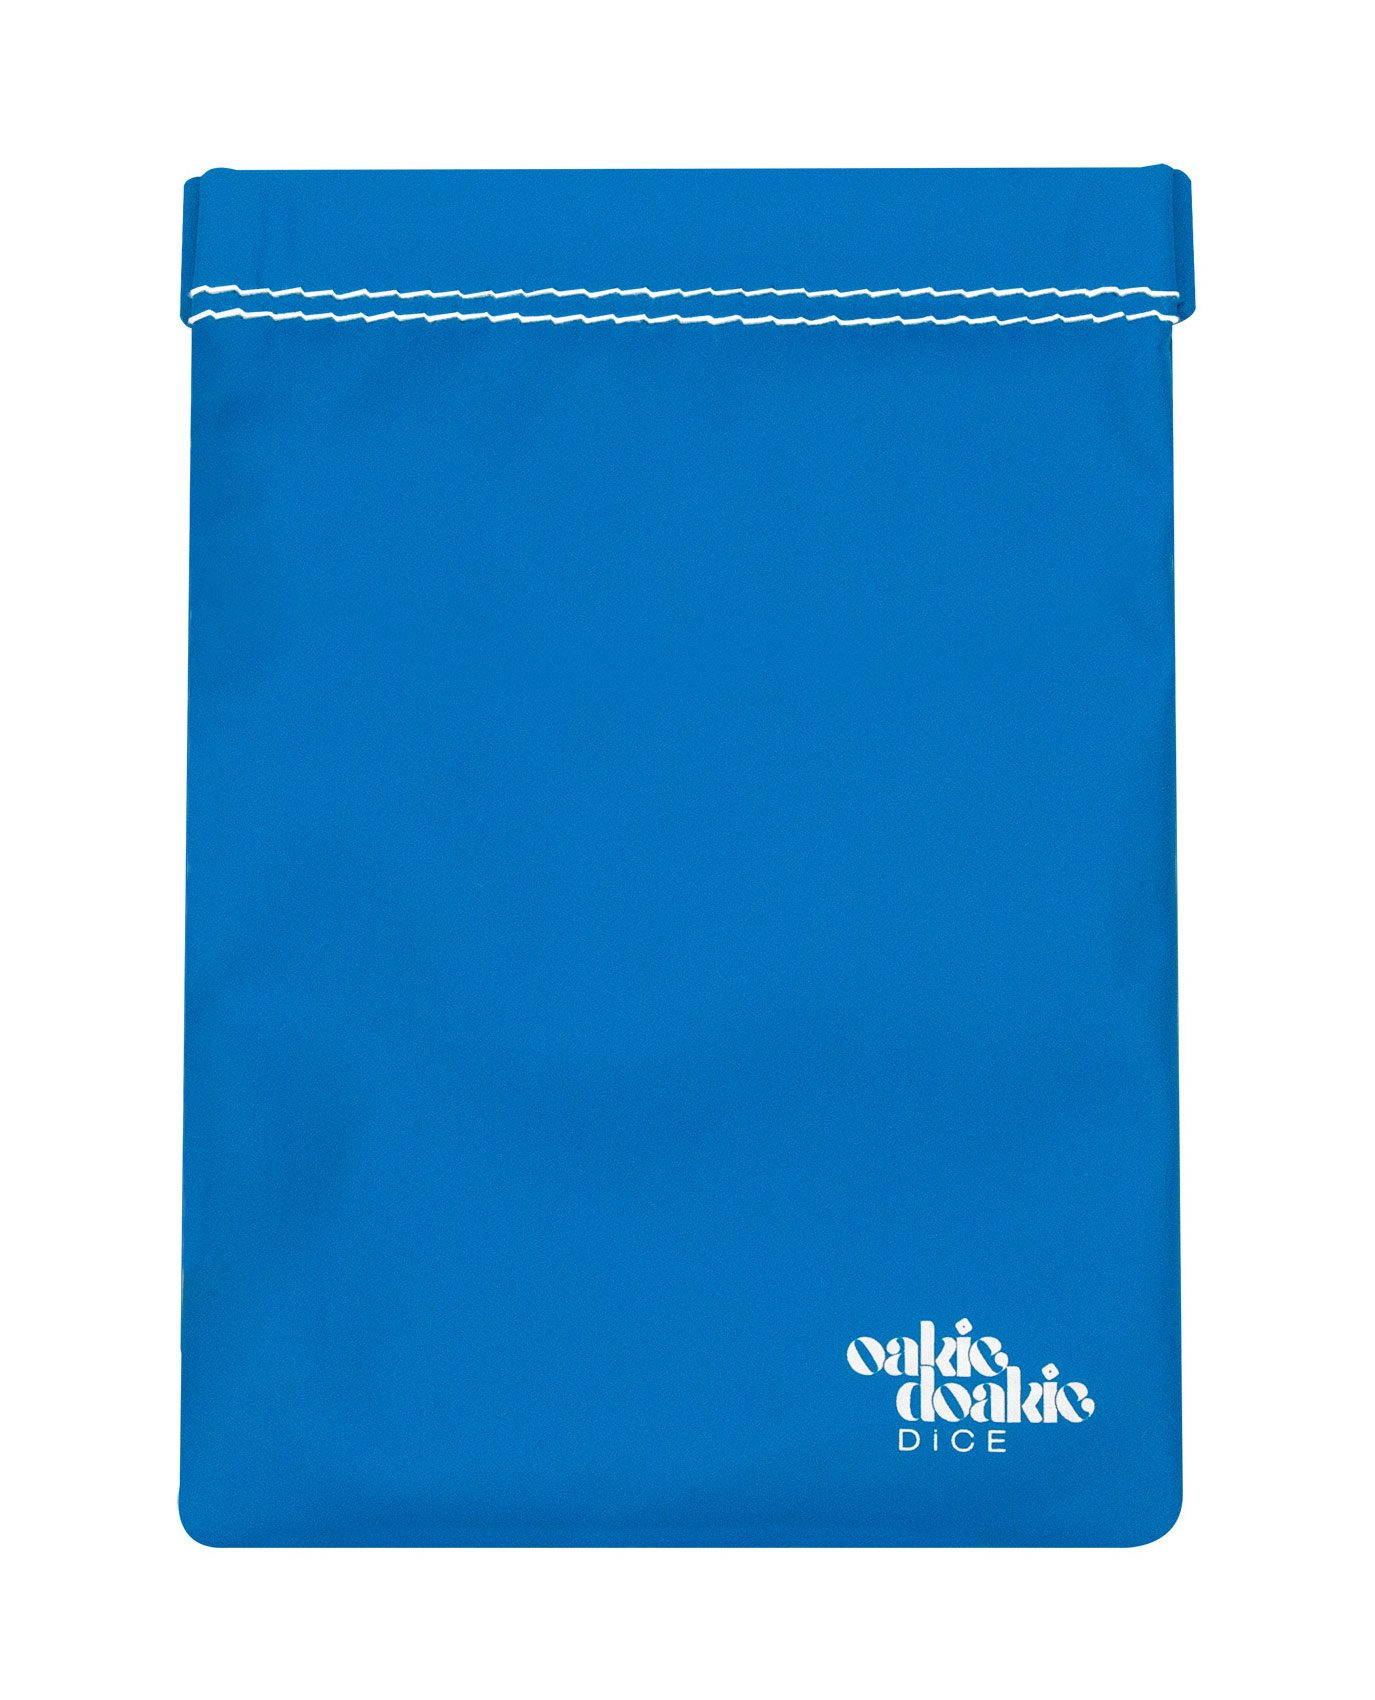 Vrecko na kocky - Oakie Doakie Dice Bag large - blue